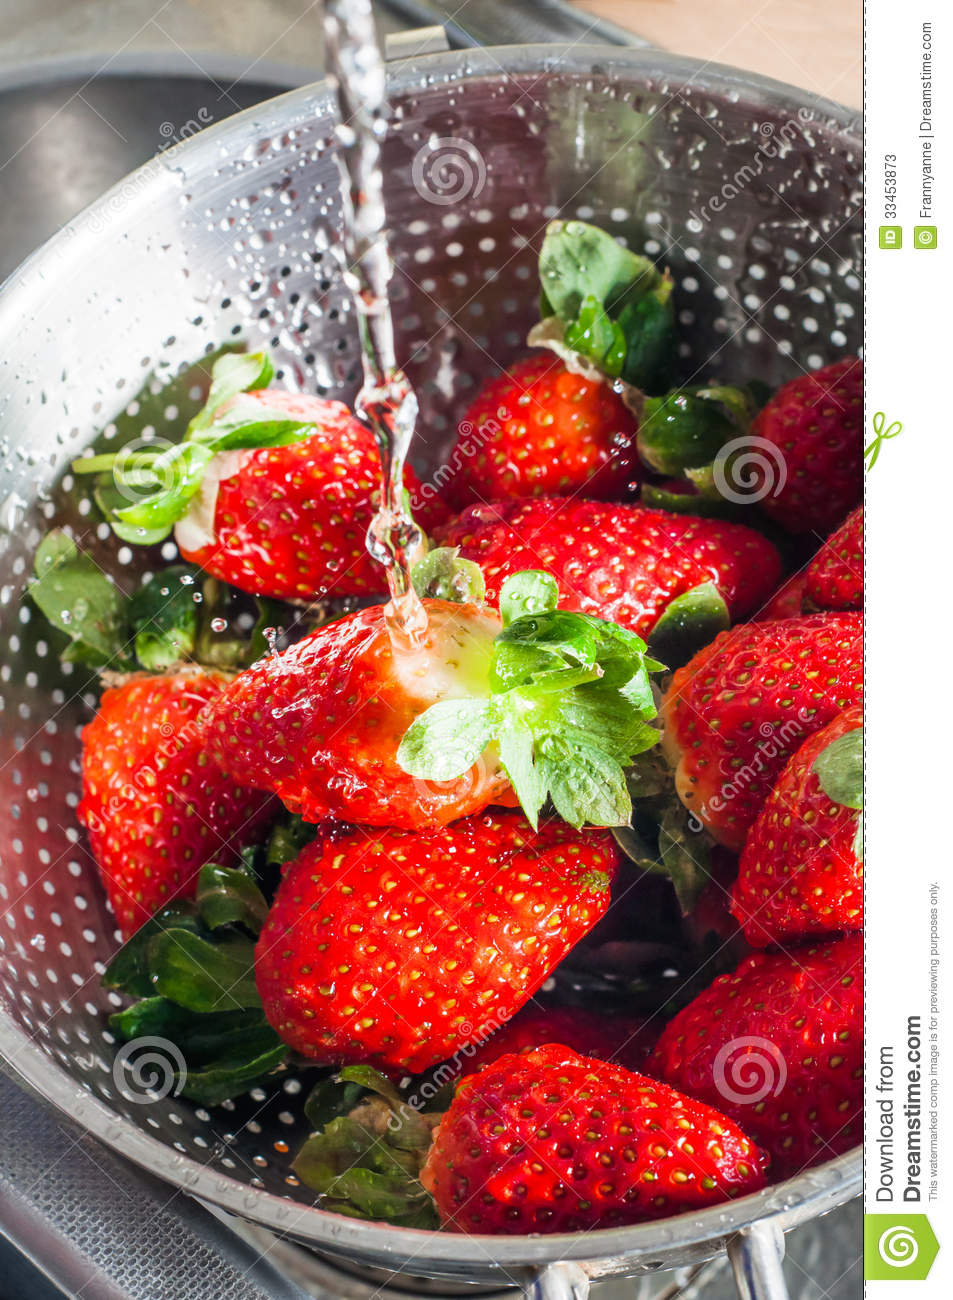 Water Washing Over Strawberries Stock Photos  Image 33453873